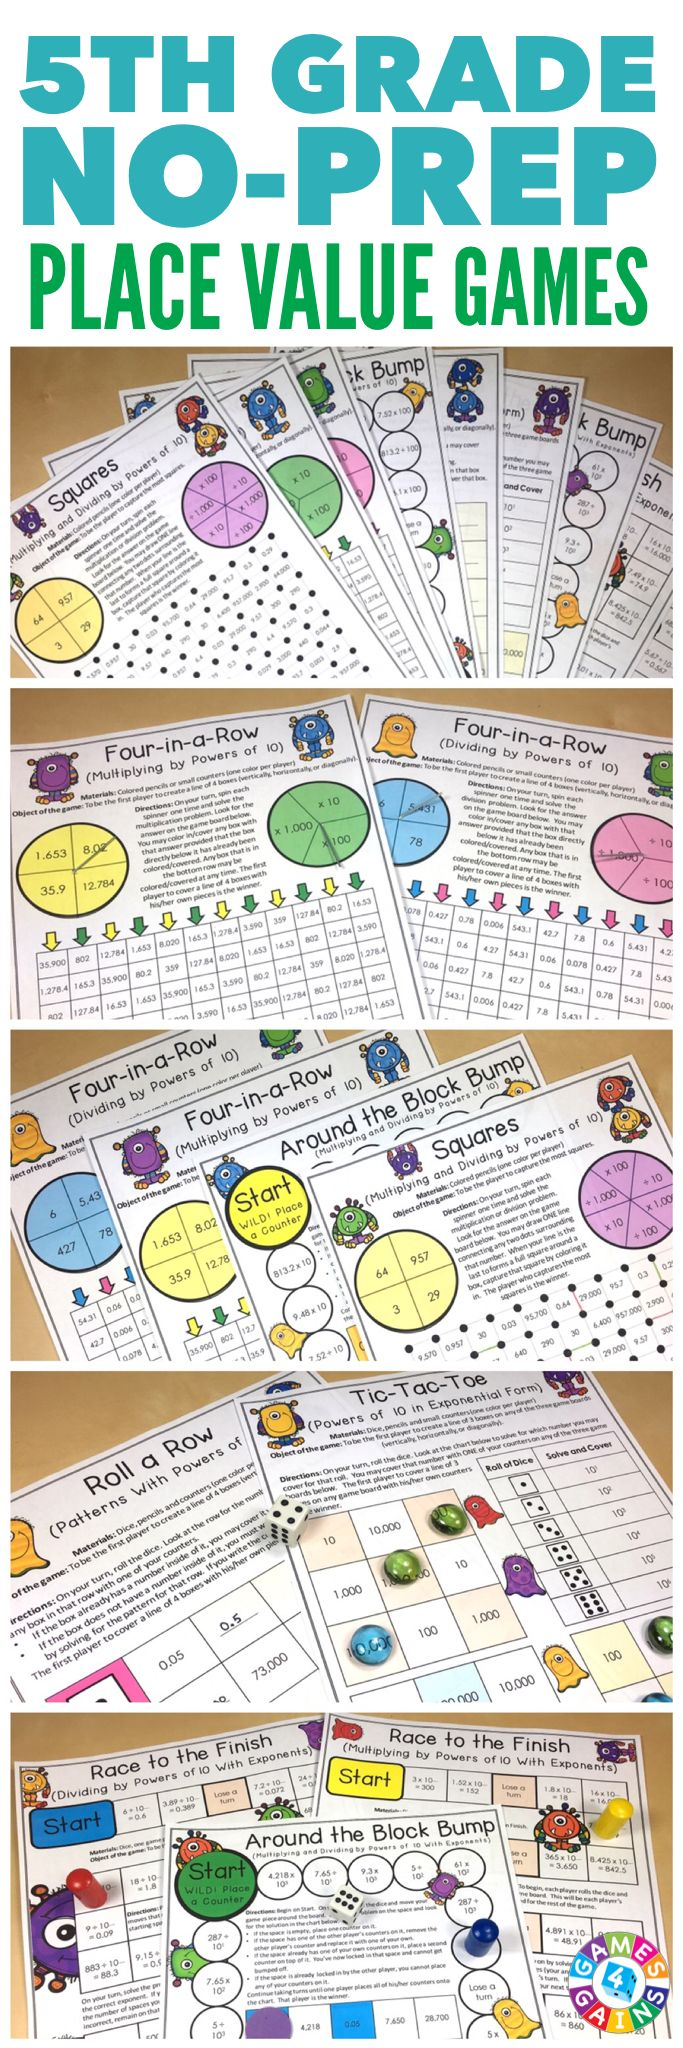 """Love these for math centers!"" Place Value Games for 5th Grade contains 9 fun and engaging printable board games to help students to practice Common Core standards 5.NBT.A.1 and 5.NBT.A.2. These games are so simple to use and require very minimal prep. They are perfect to use in math centers or as extension activities when students complete their work!"